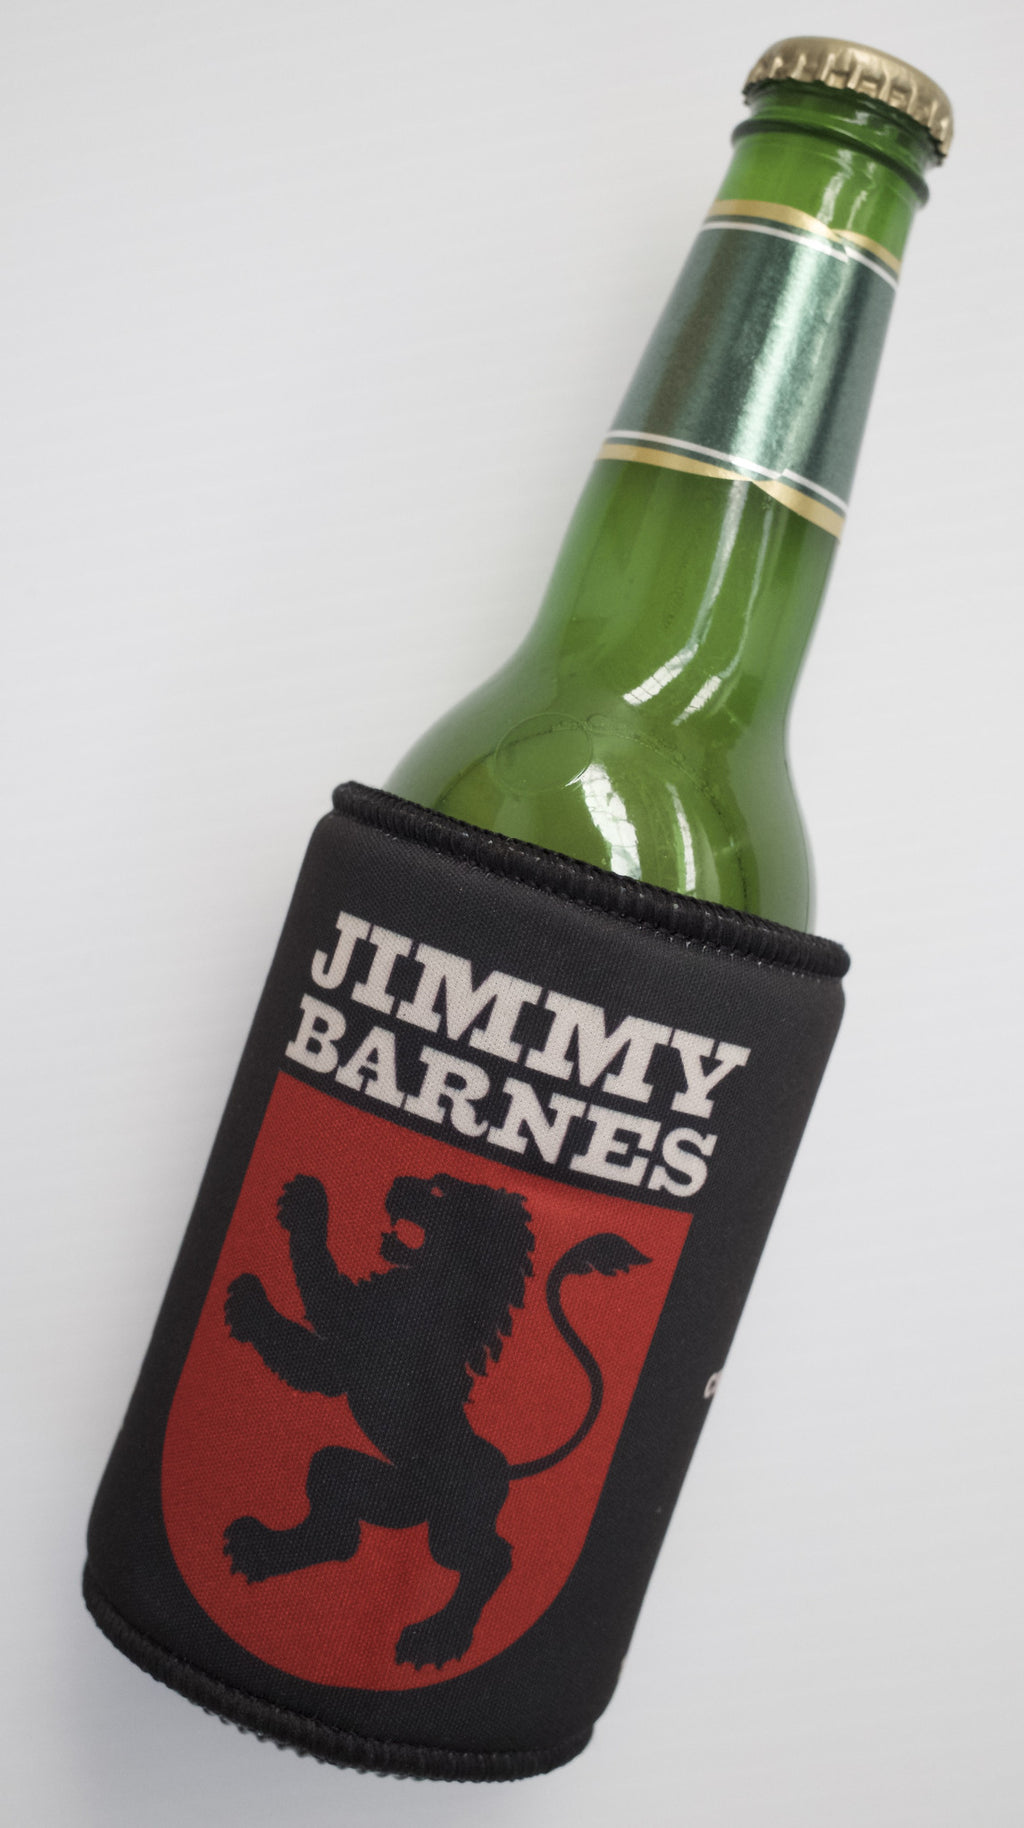 'Lion' Stubbie Holder - Jimmy Barnes Online Store